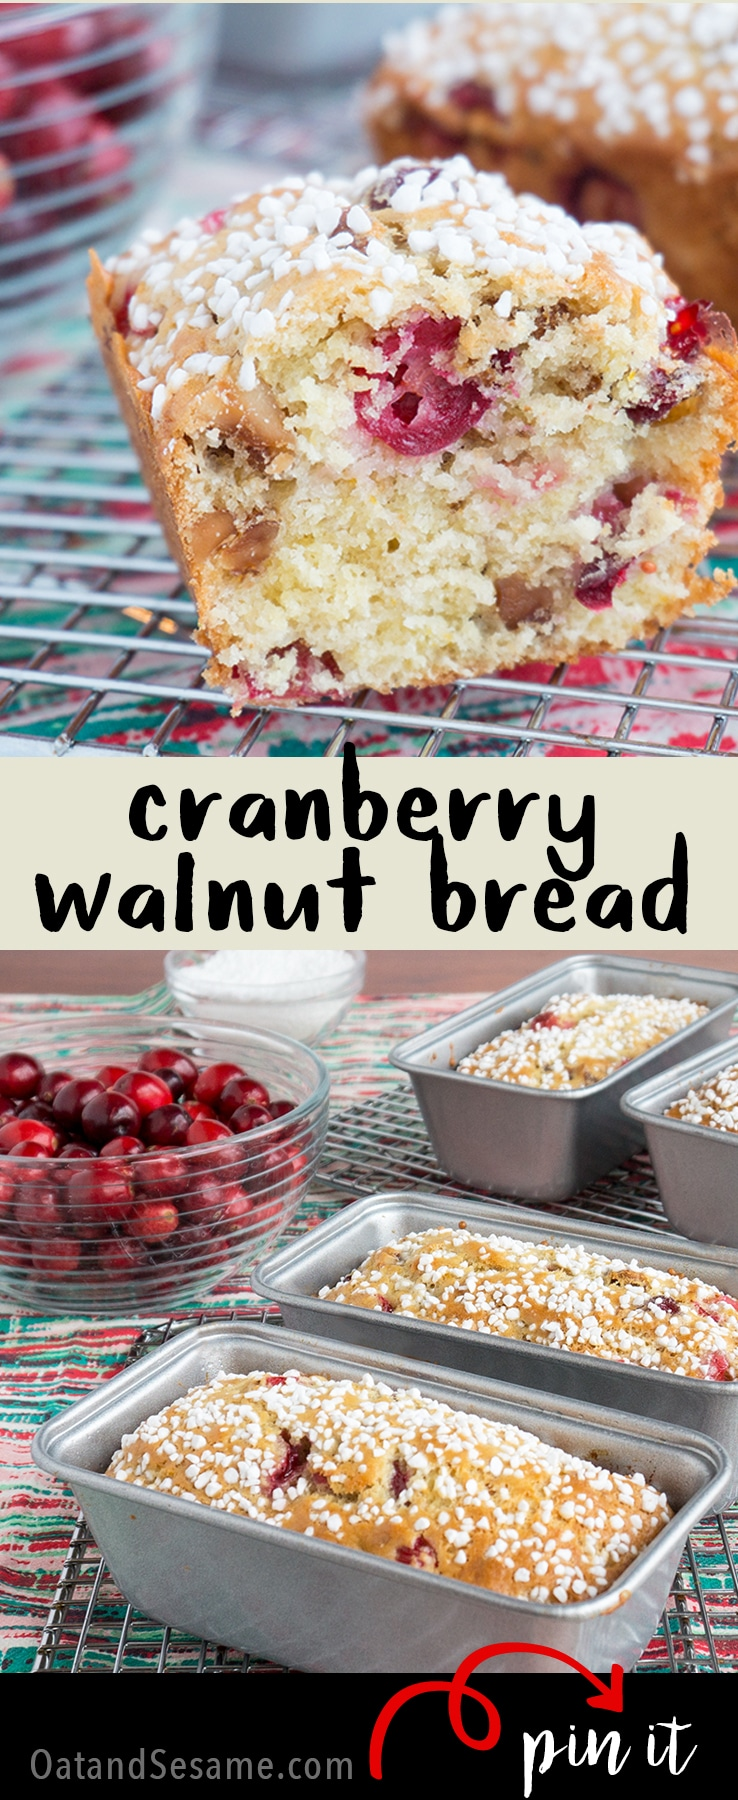 A festive holiday quick bread! Perfect for gifting! Cranberry Walnut Bread is sweet, tart and delicious! | #QUICK #BREAD | #HOLIDAY #BAKING | #CRANBERRY | #Recipes at OatandSesame.com